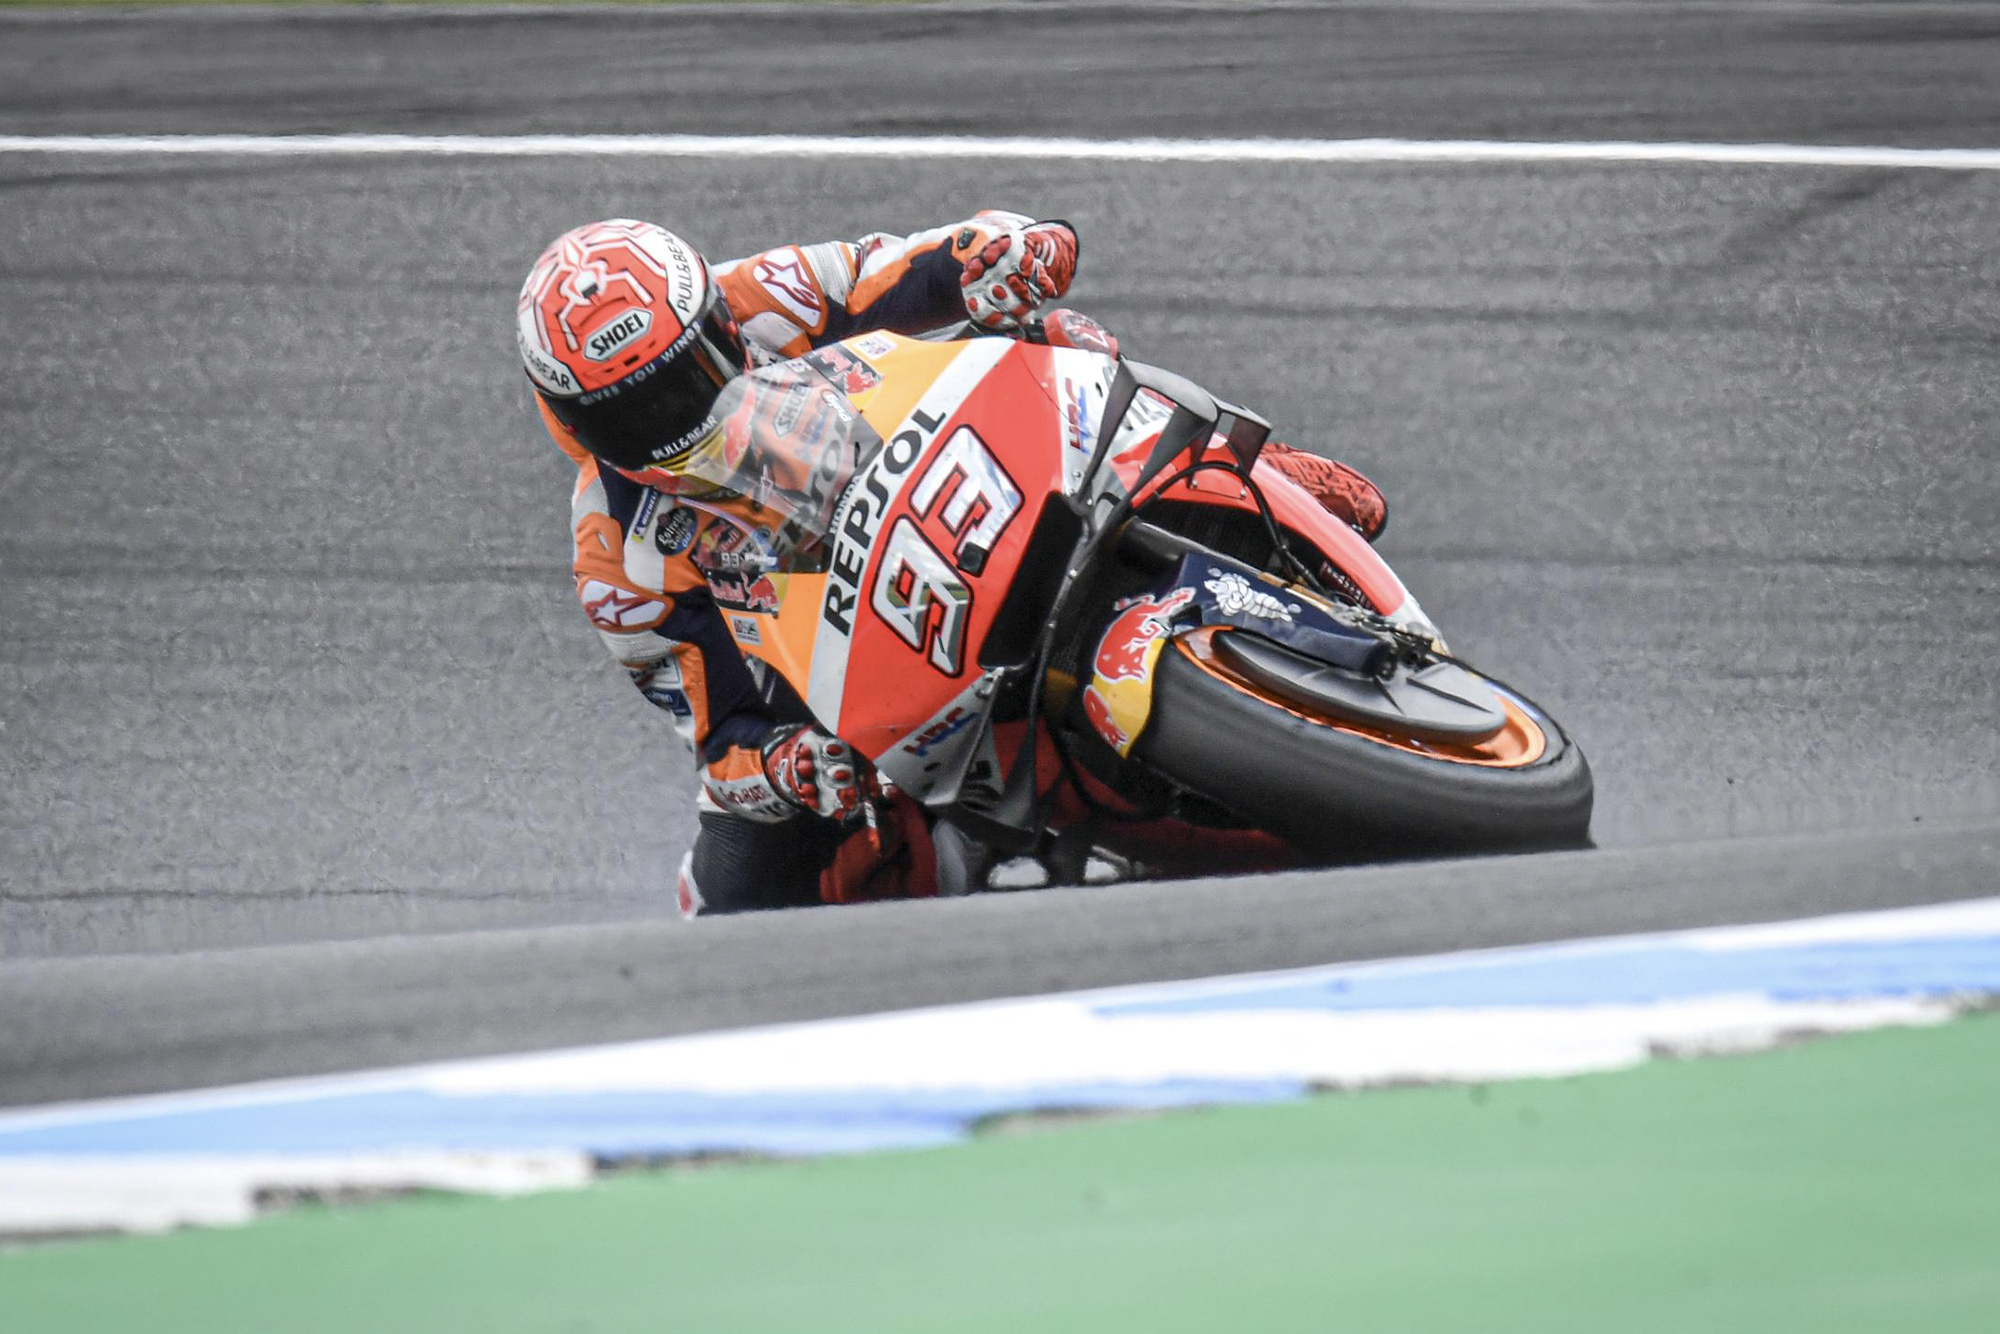 Marc Marquez saves a crash at 70 degrees of lean at Phillip Island